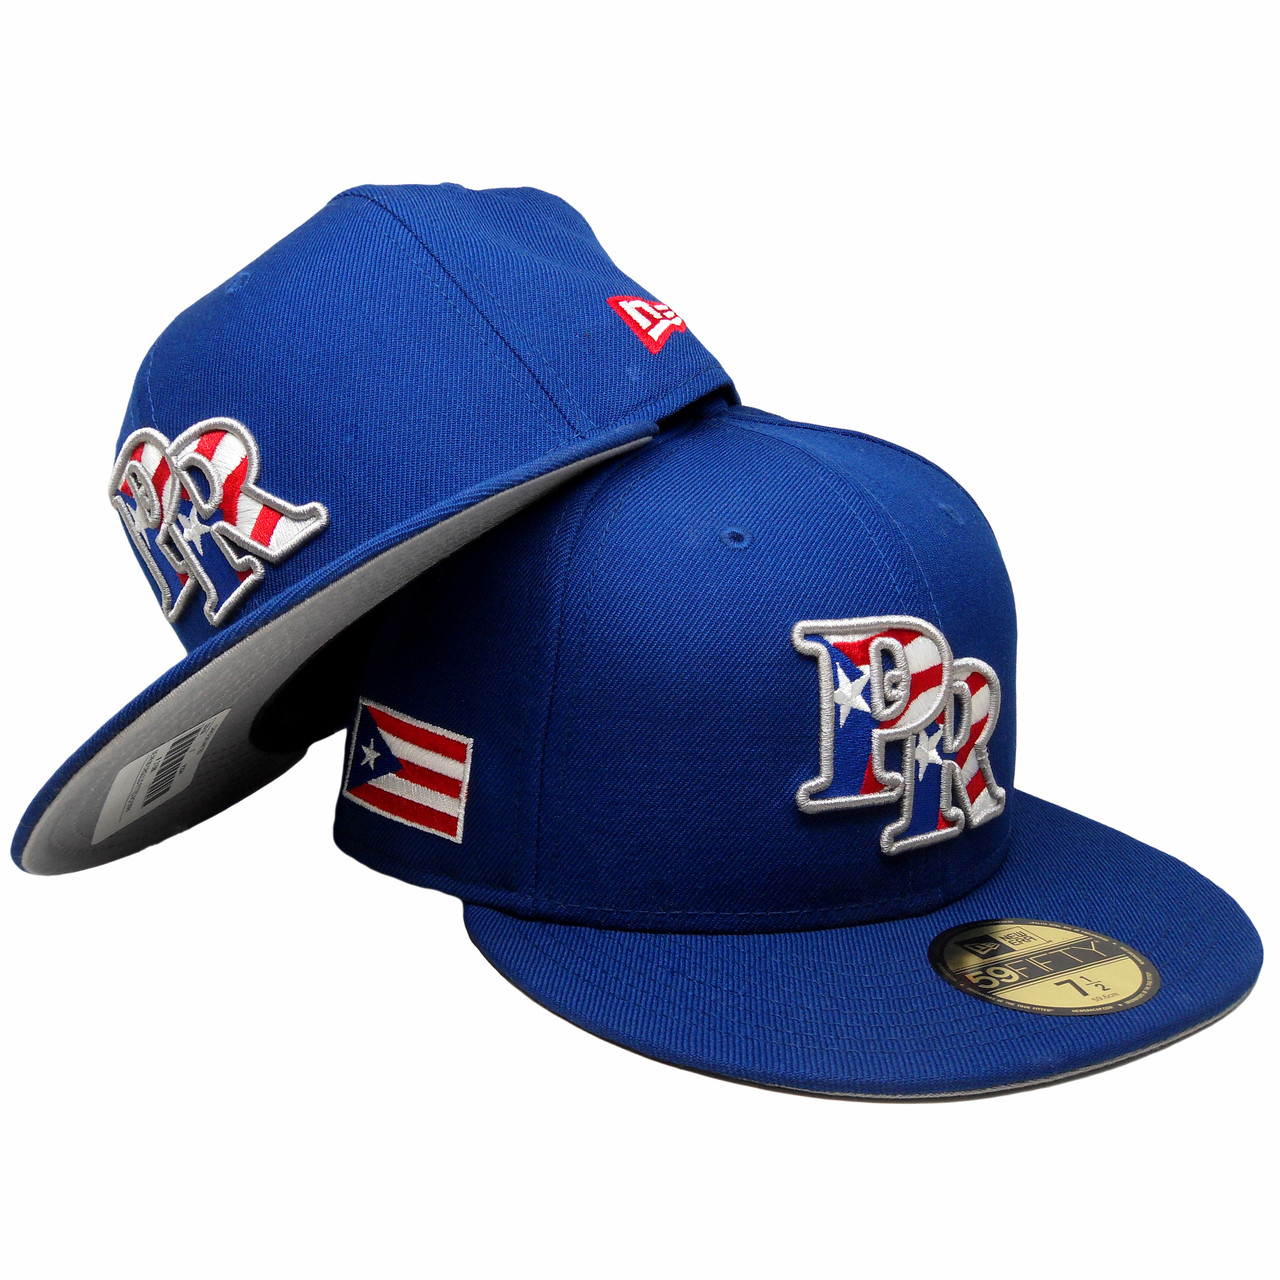 25df4b22876d1 Puerto Rico New Era 59Fifty Custom Fitted Hat - Royal